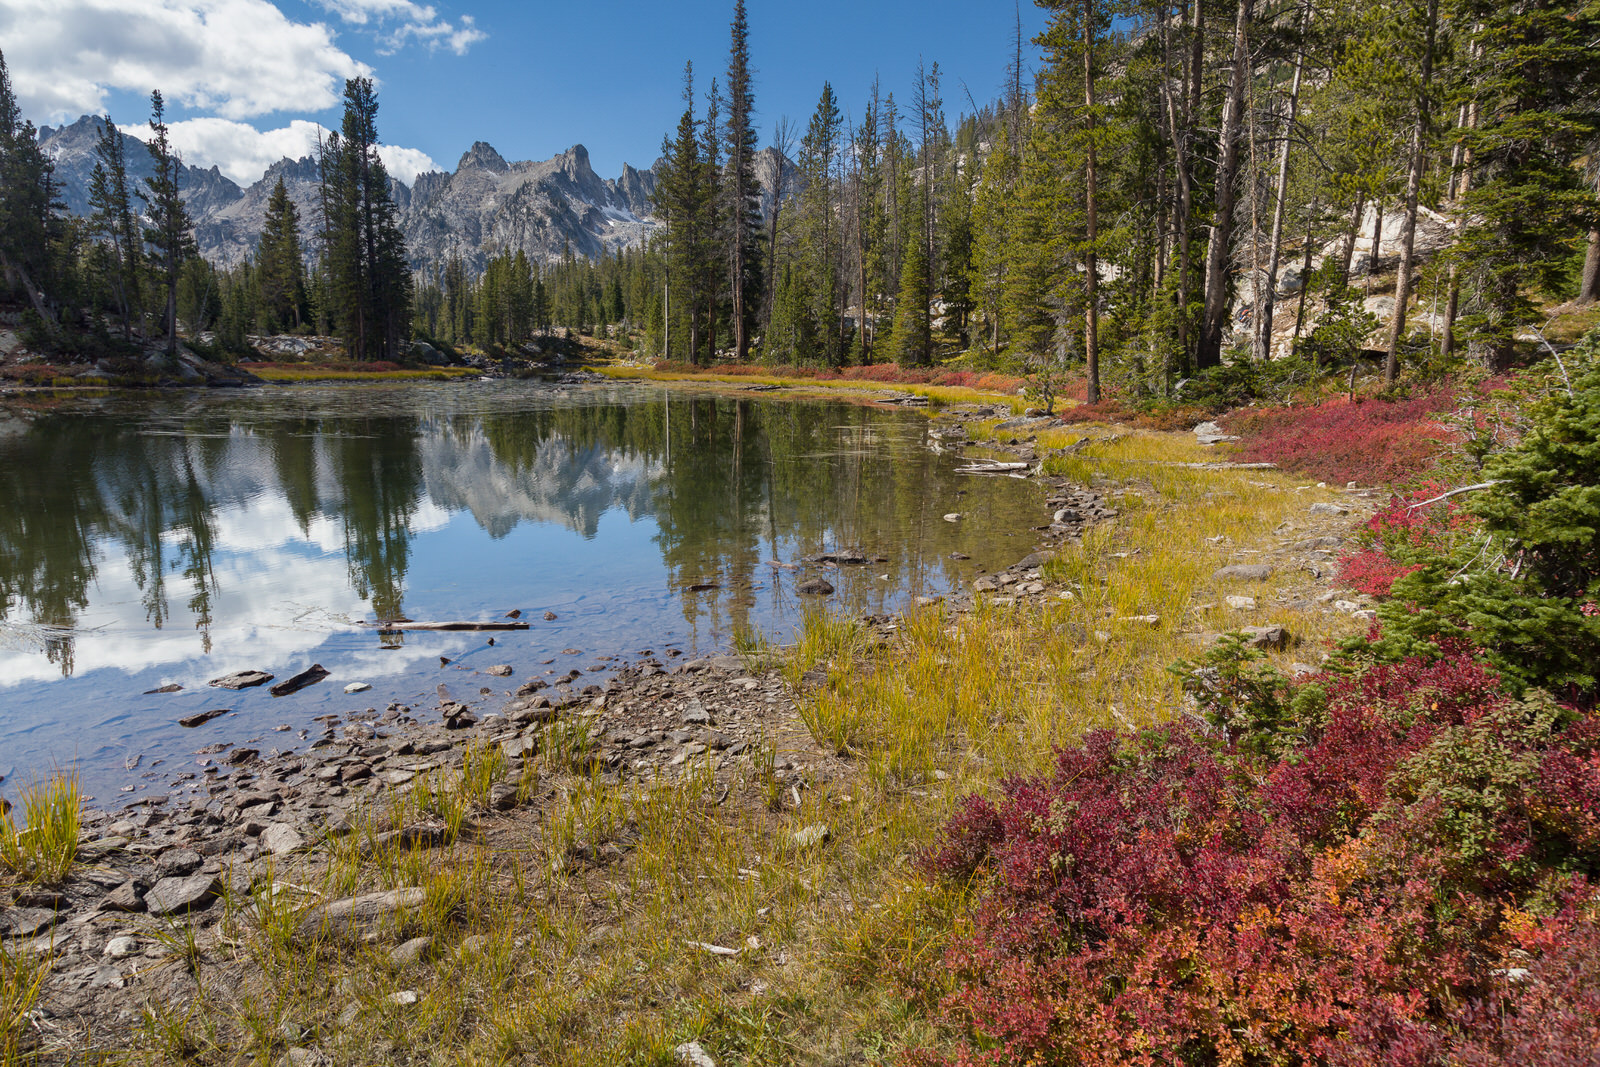 First glimpse of the Sawtooths from Alice Lake